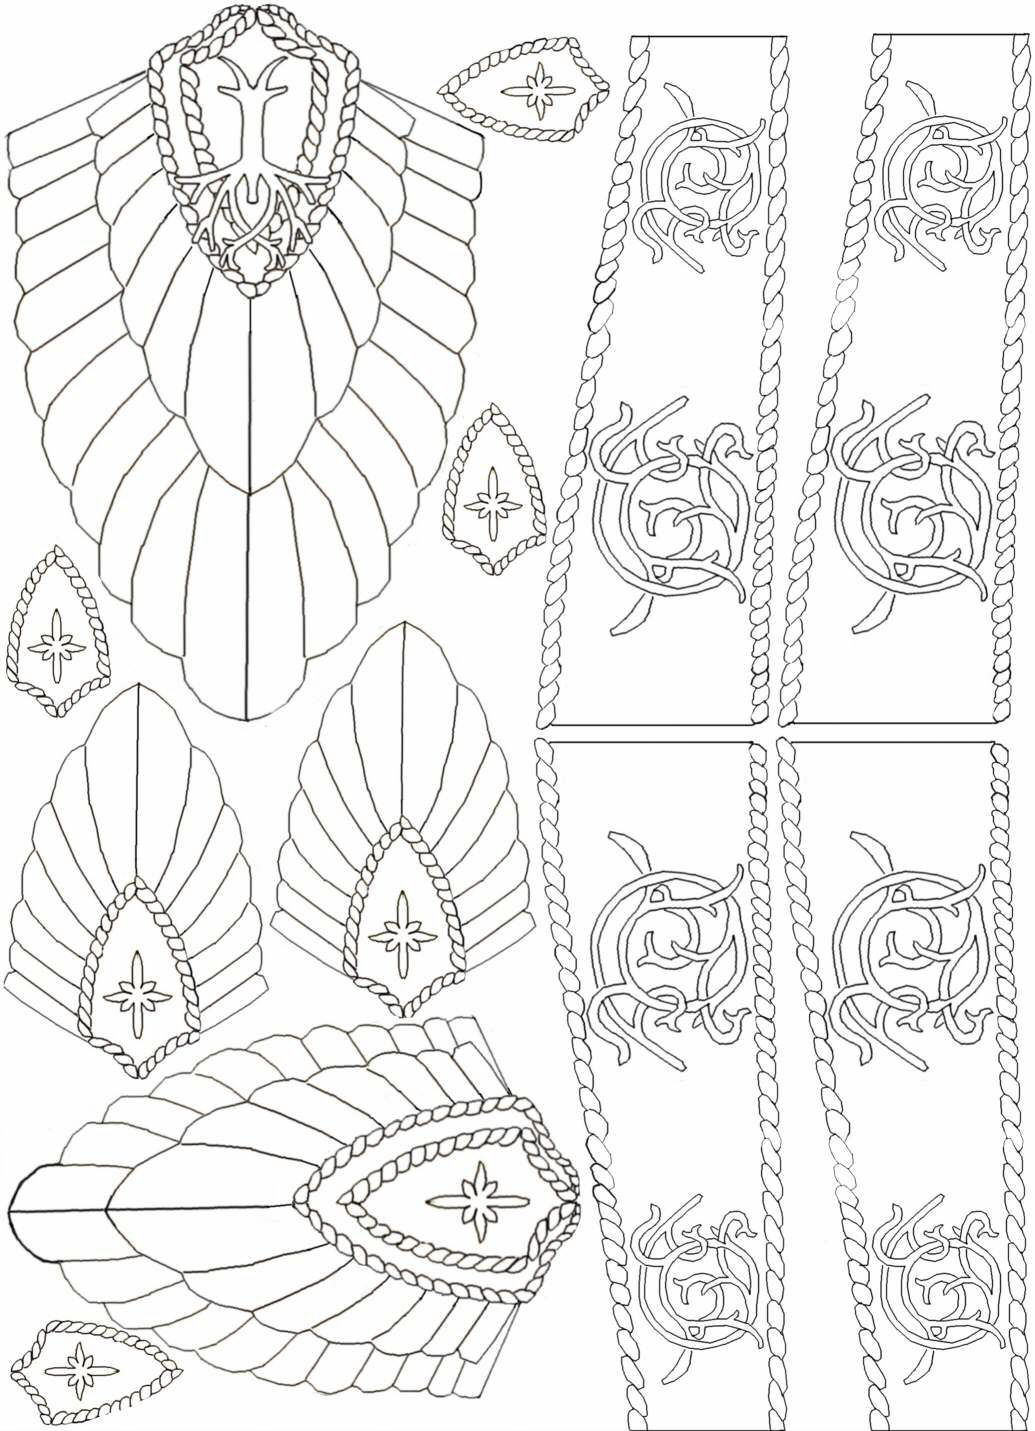 aragorn s crown template crafty handy manny pinterest crown